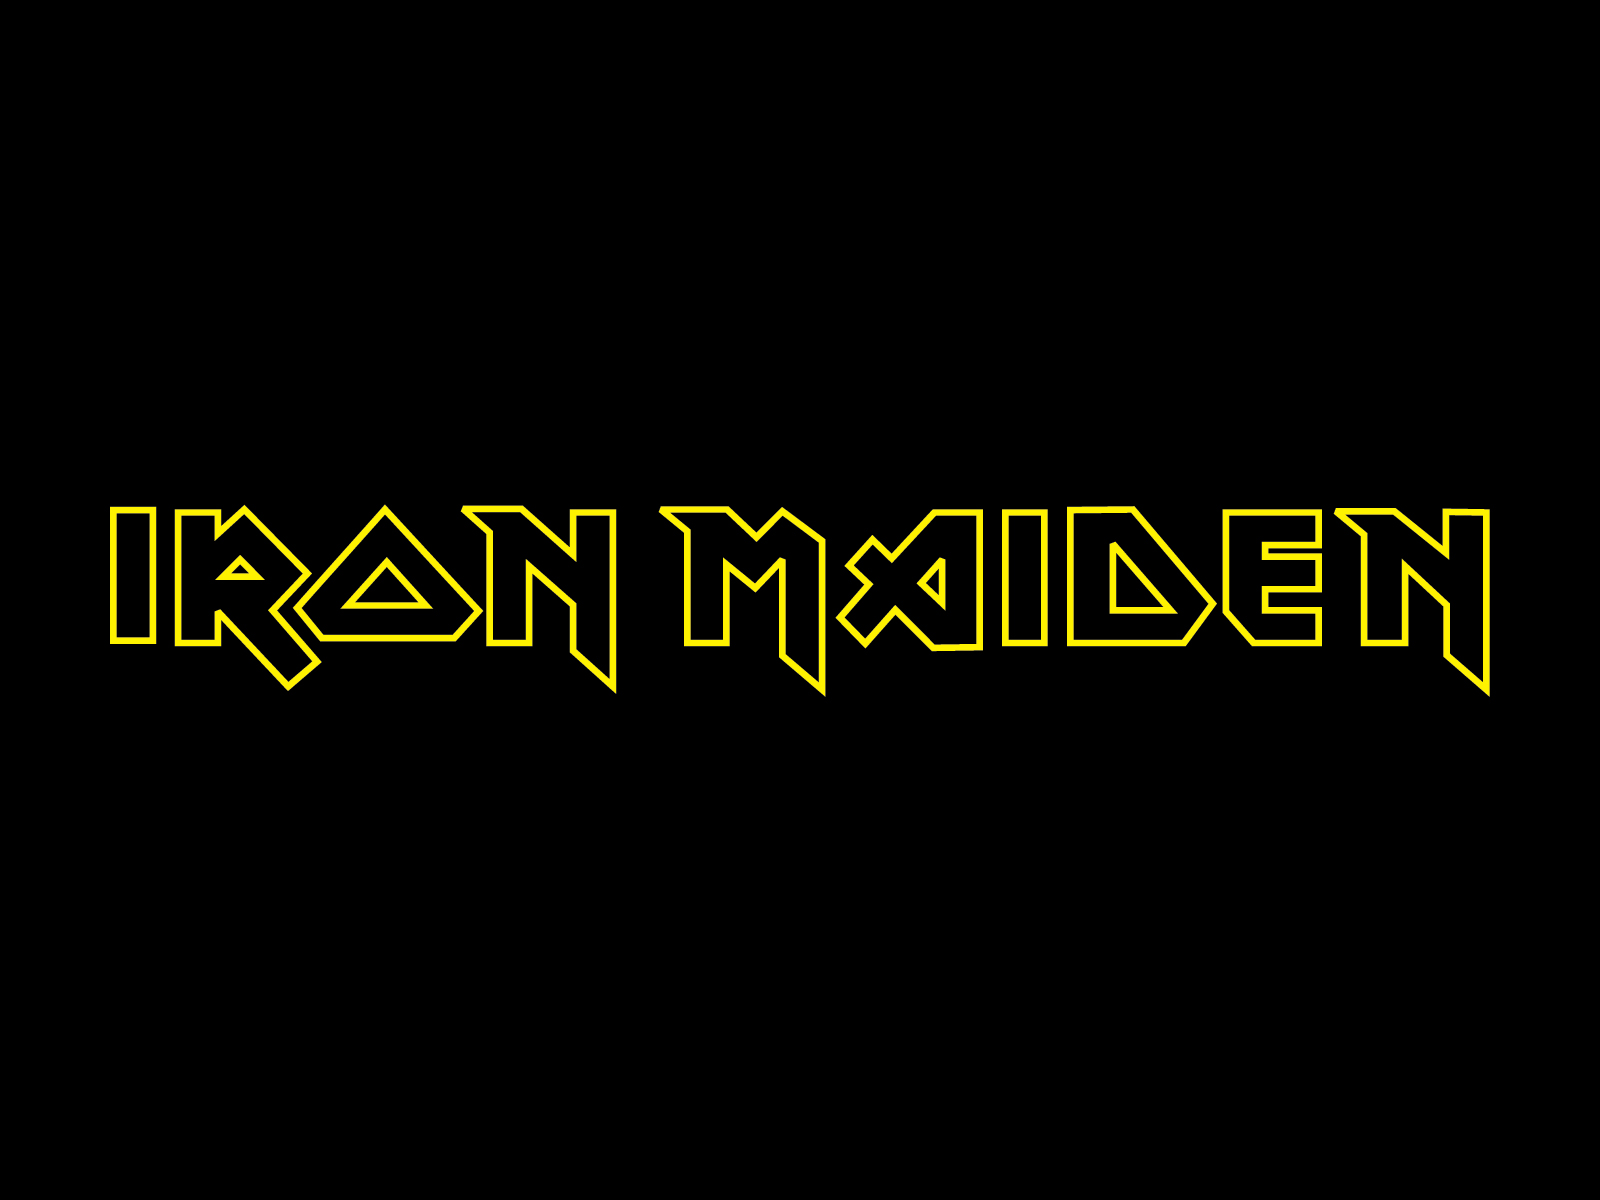 Iron Maiden band logo wallpapers | Band logos - Rock band logos